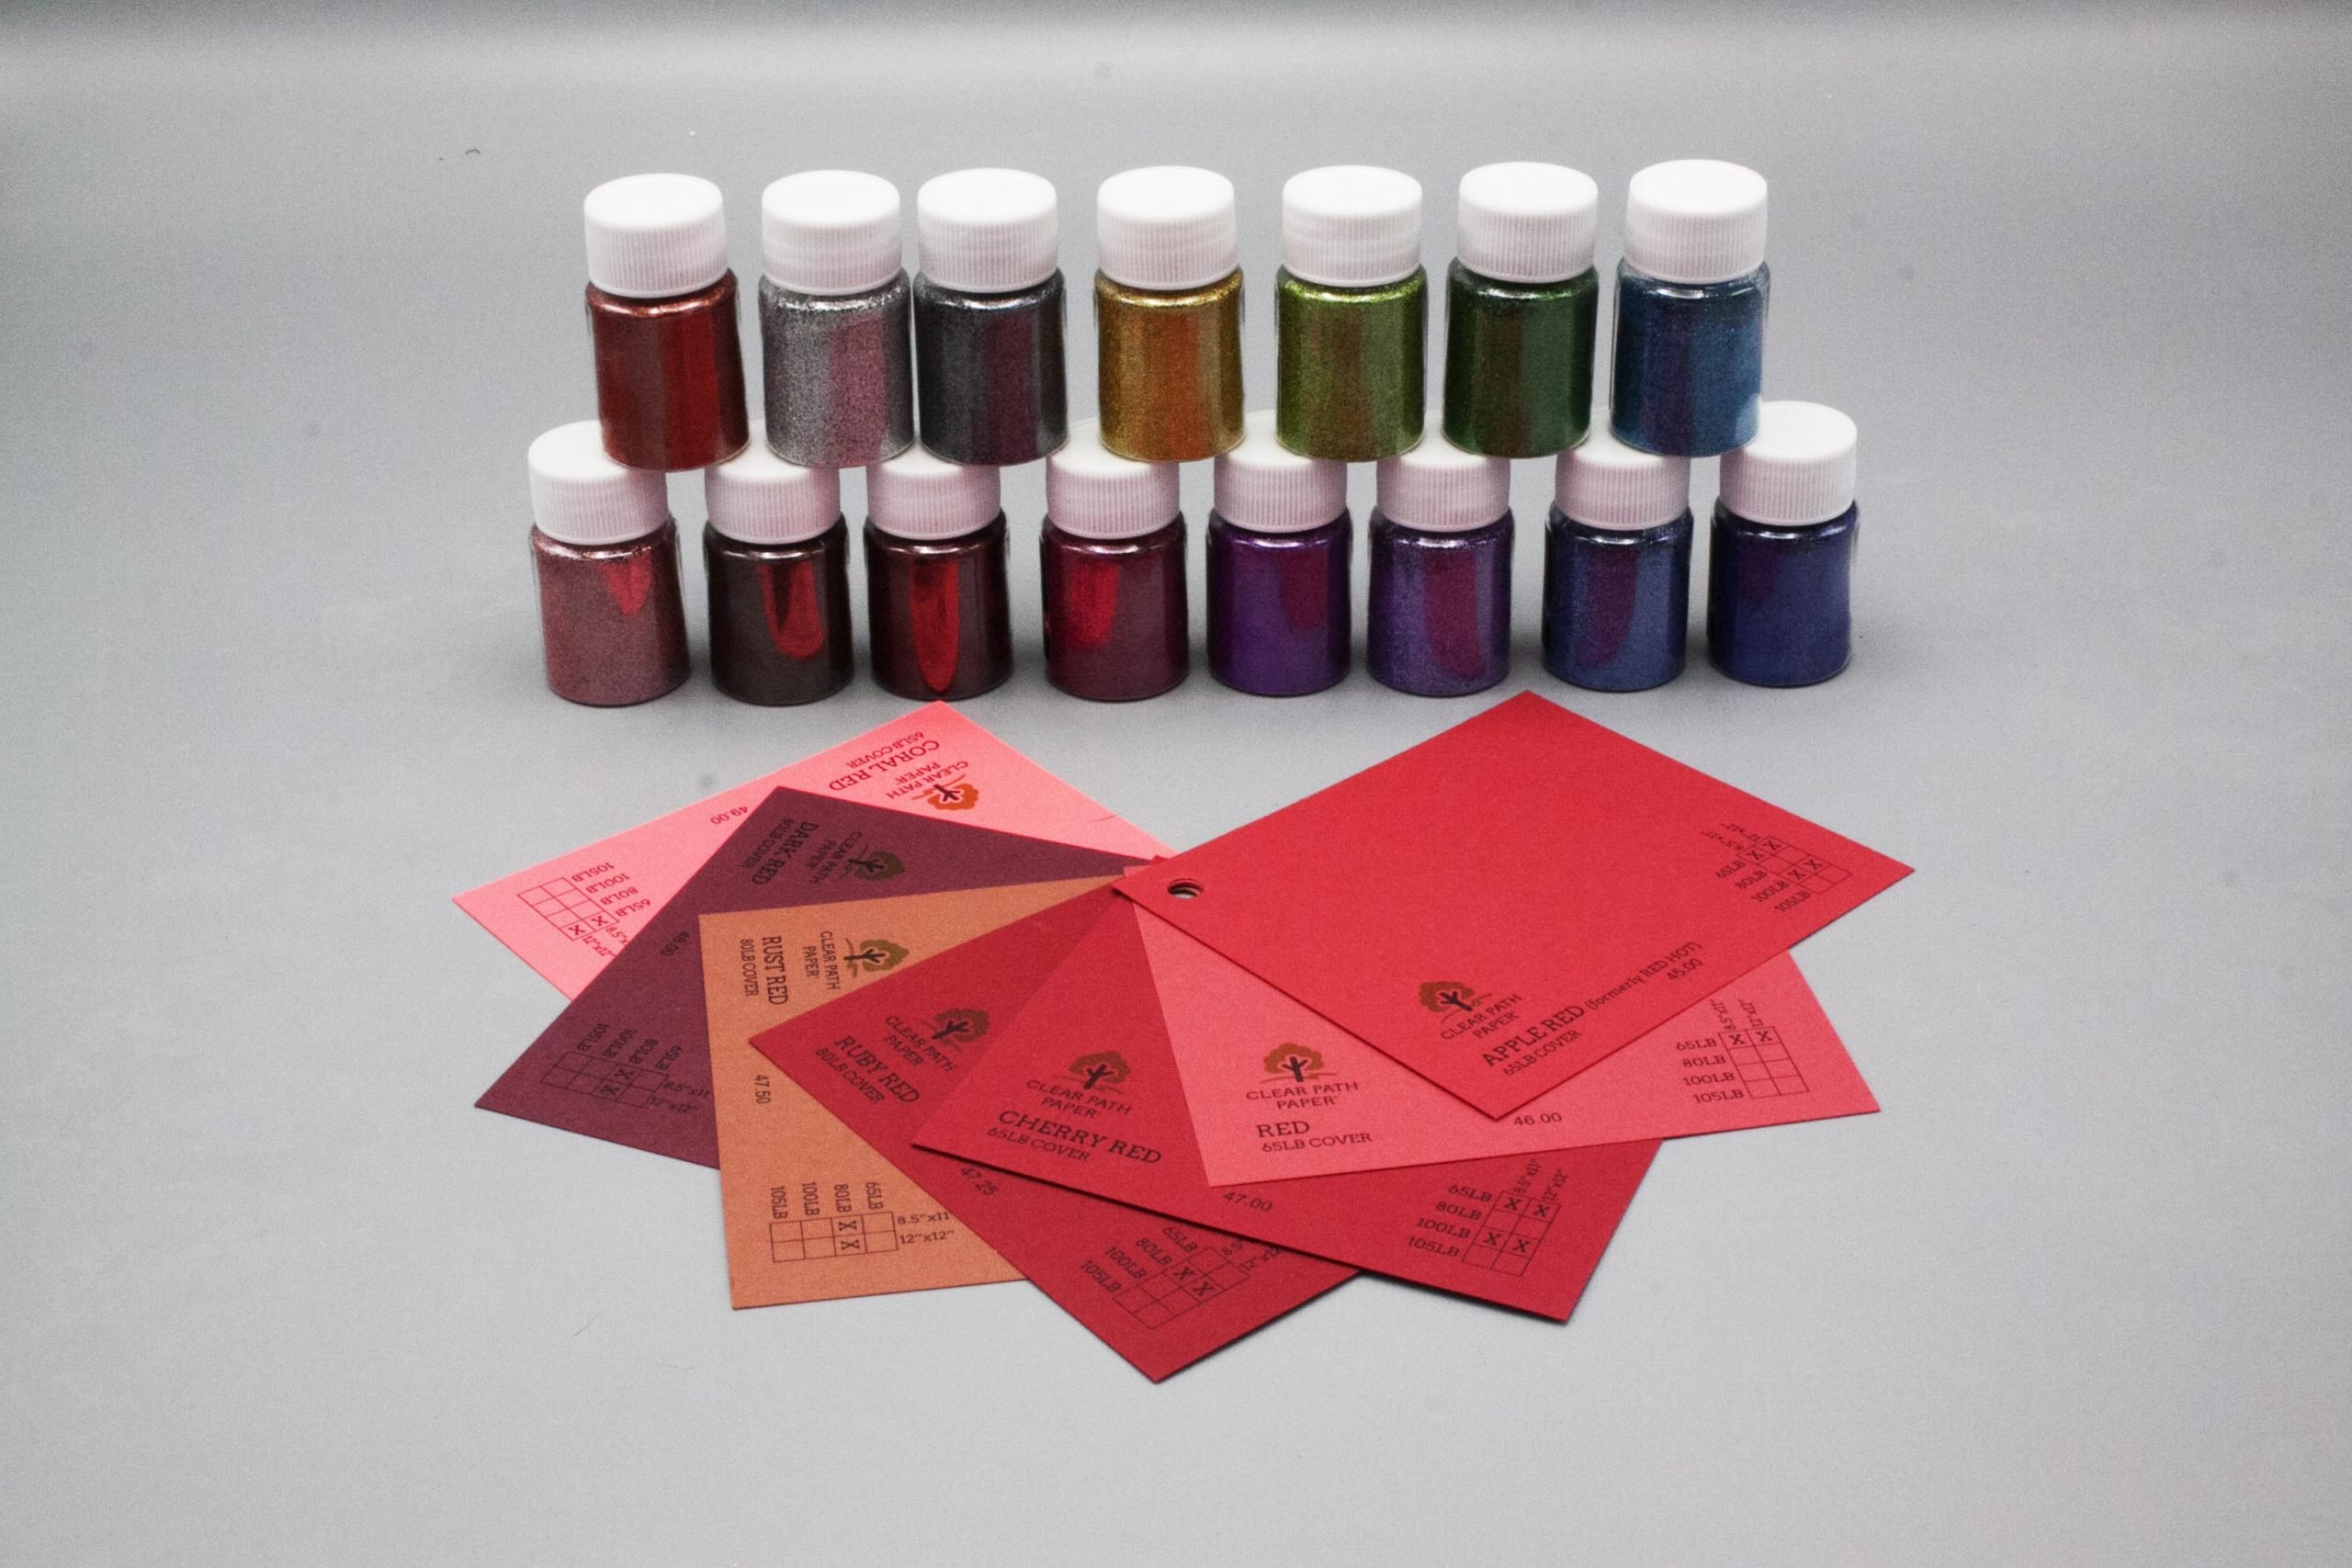 Image of Lets Resin Glitter Powder with Red Cardstock